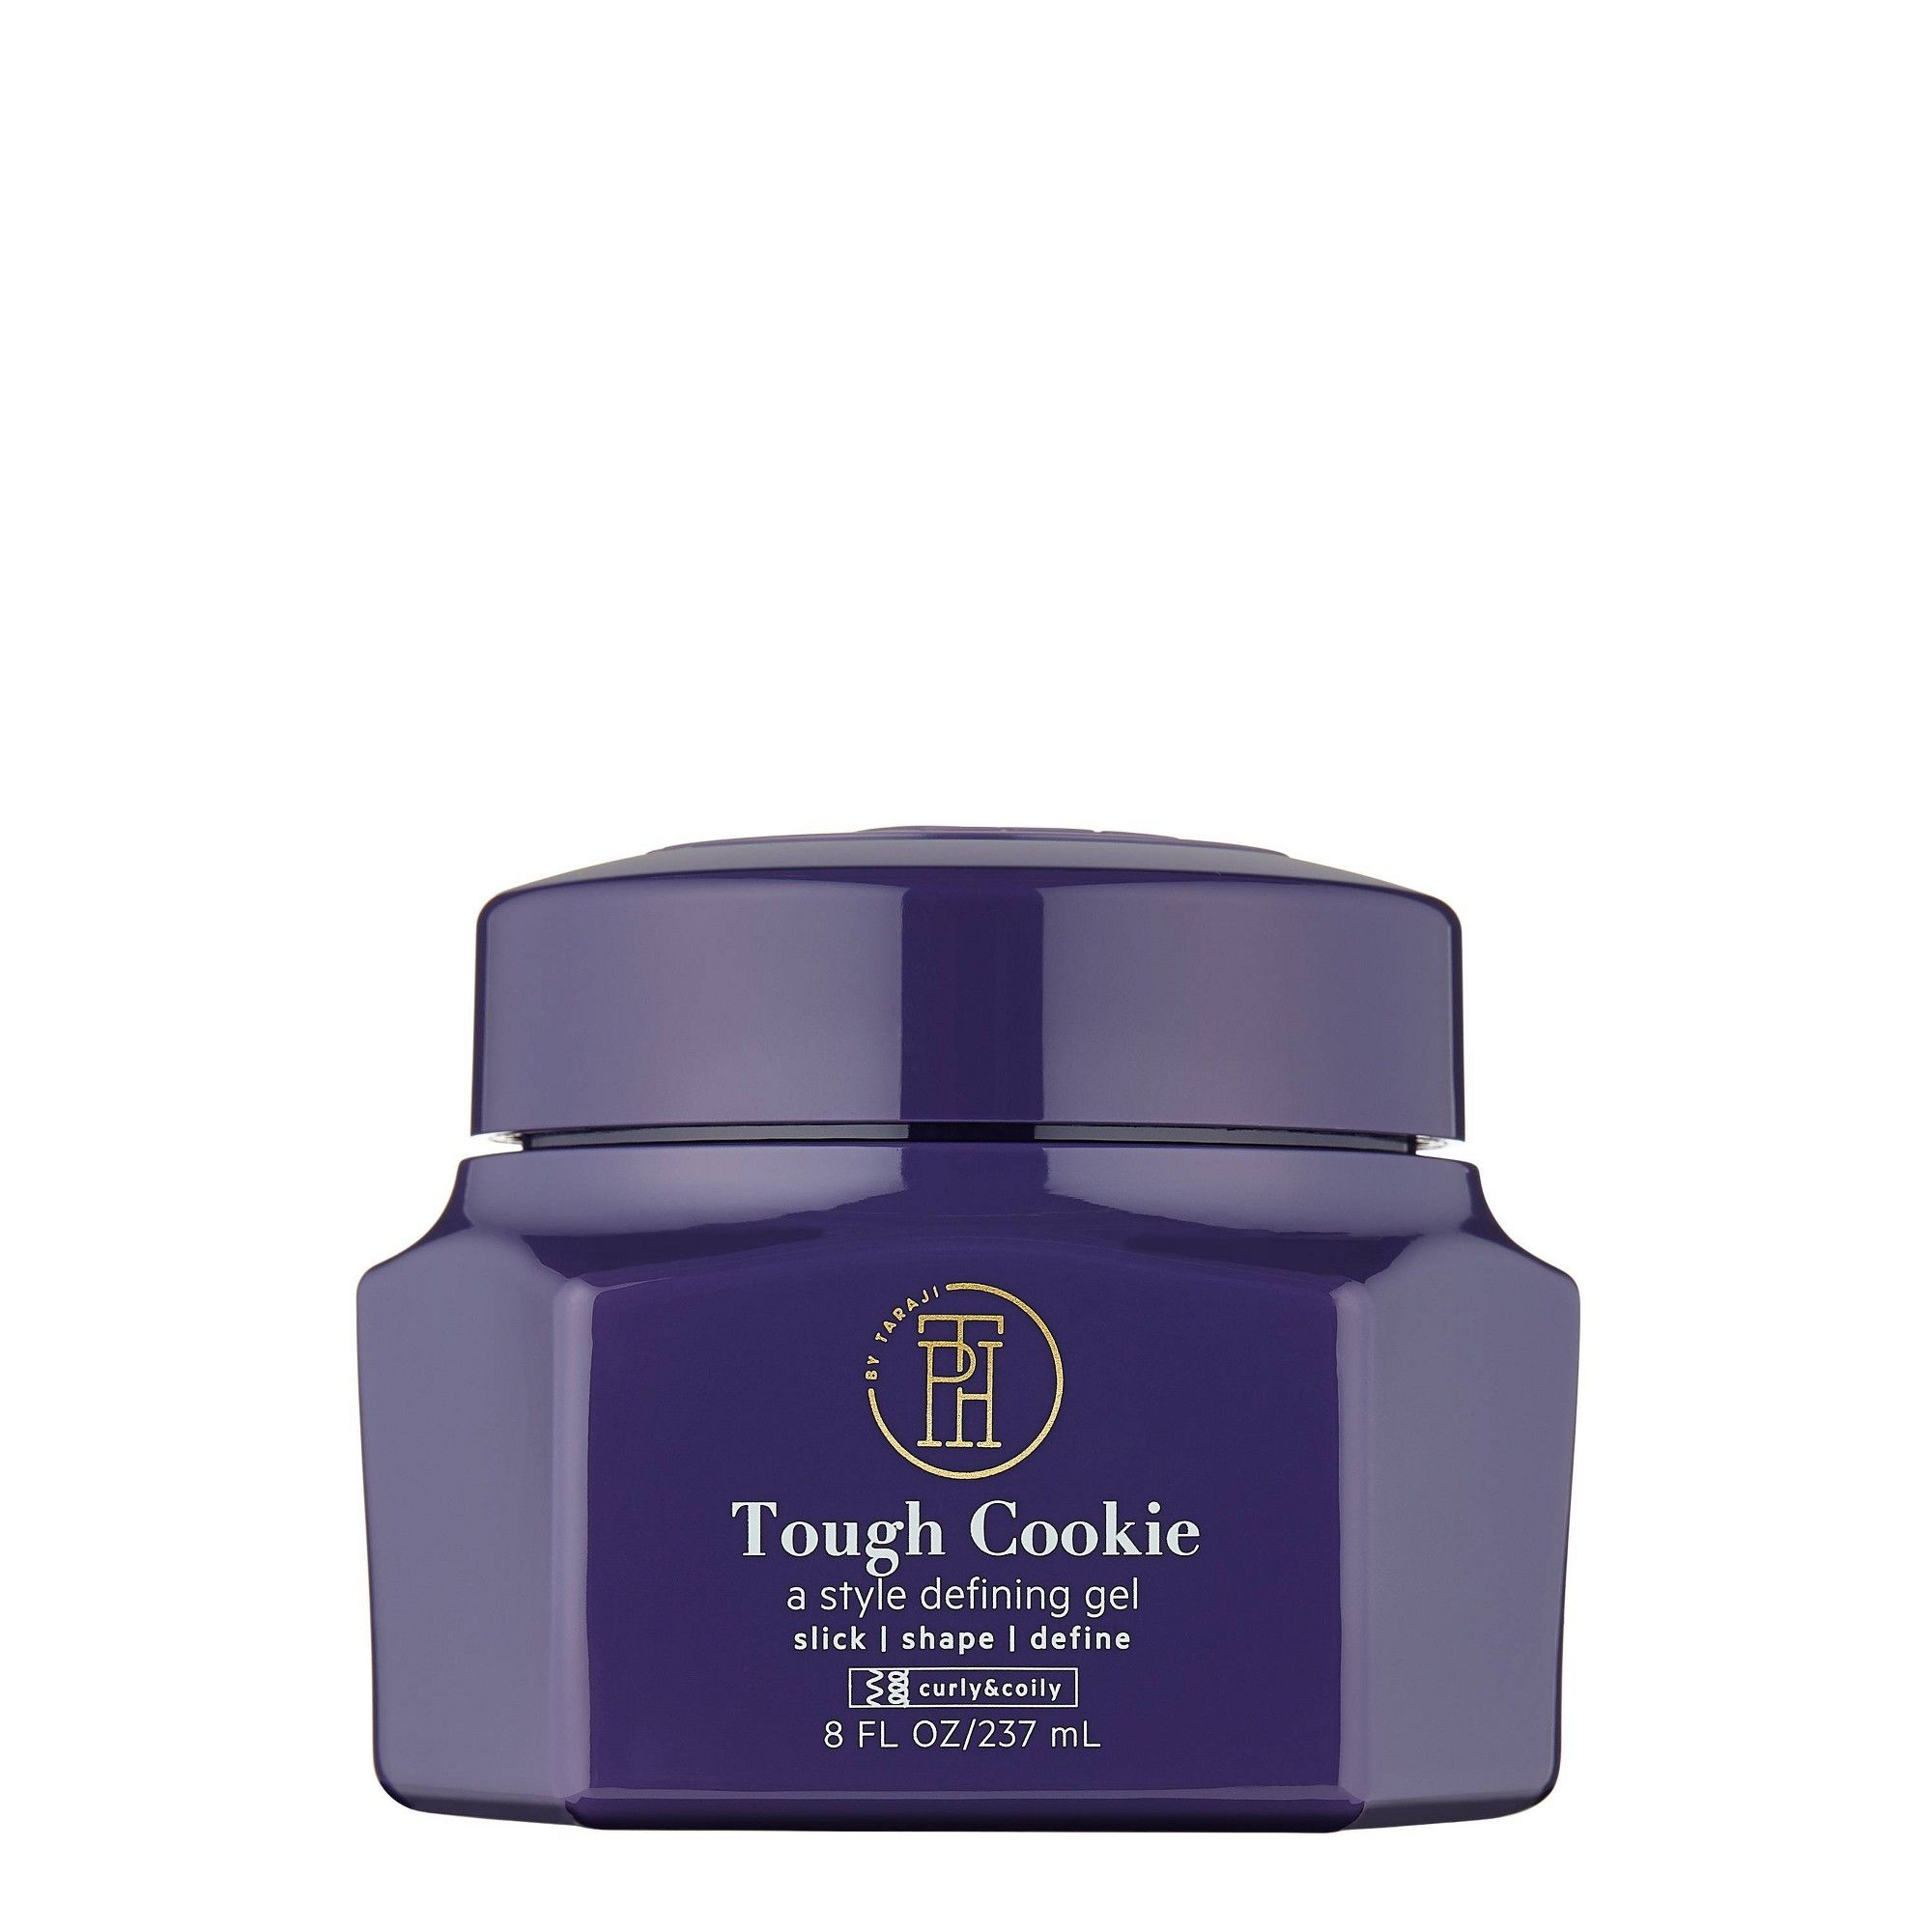 TPH by TARAJI Tough Cookie Style Defining Gel 8 fl oz in